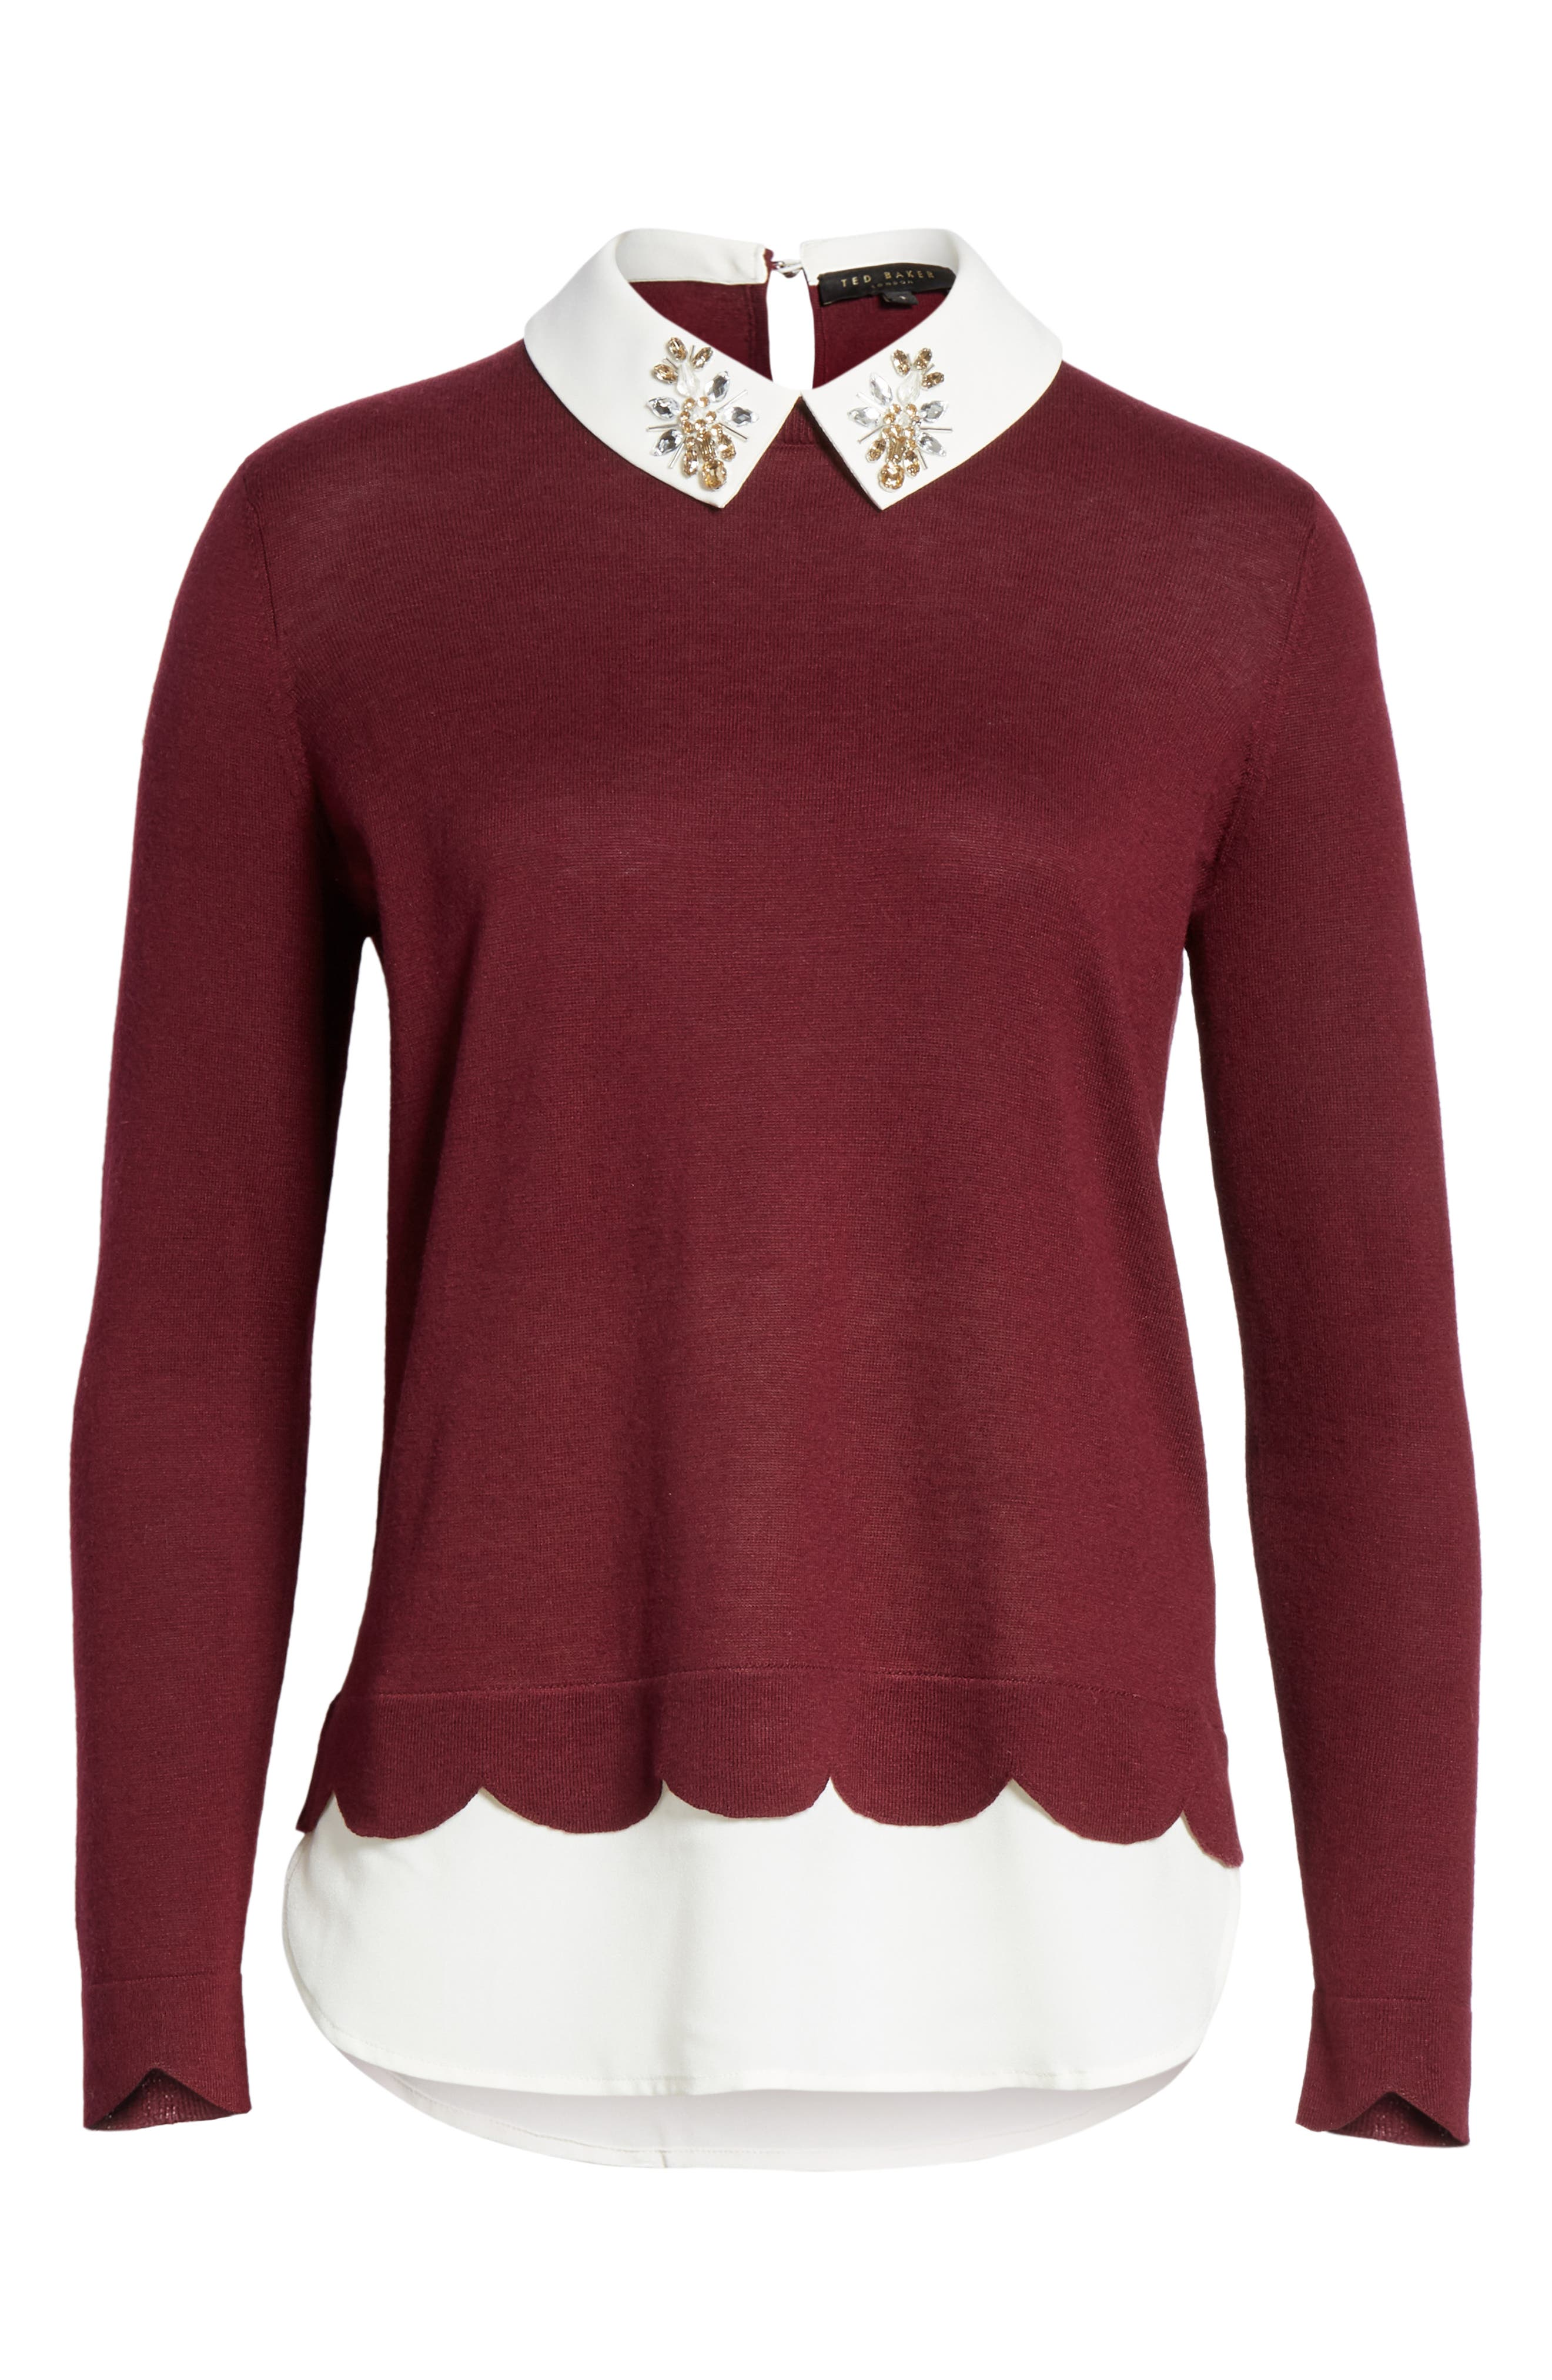 Suzaine Layered Sweater,                             Alternate thumbnail 6, color,                             MAROON